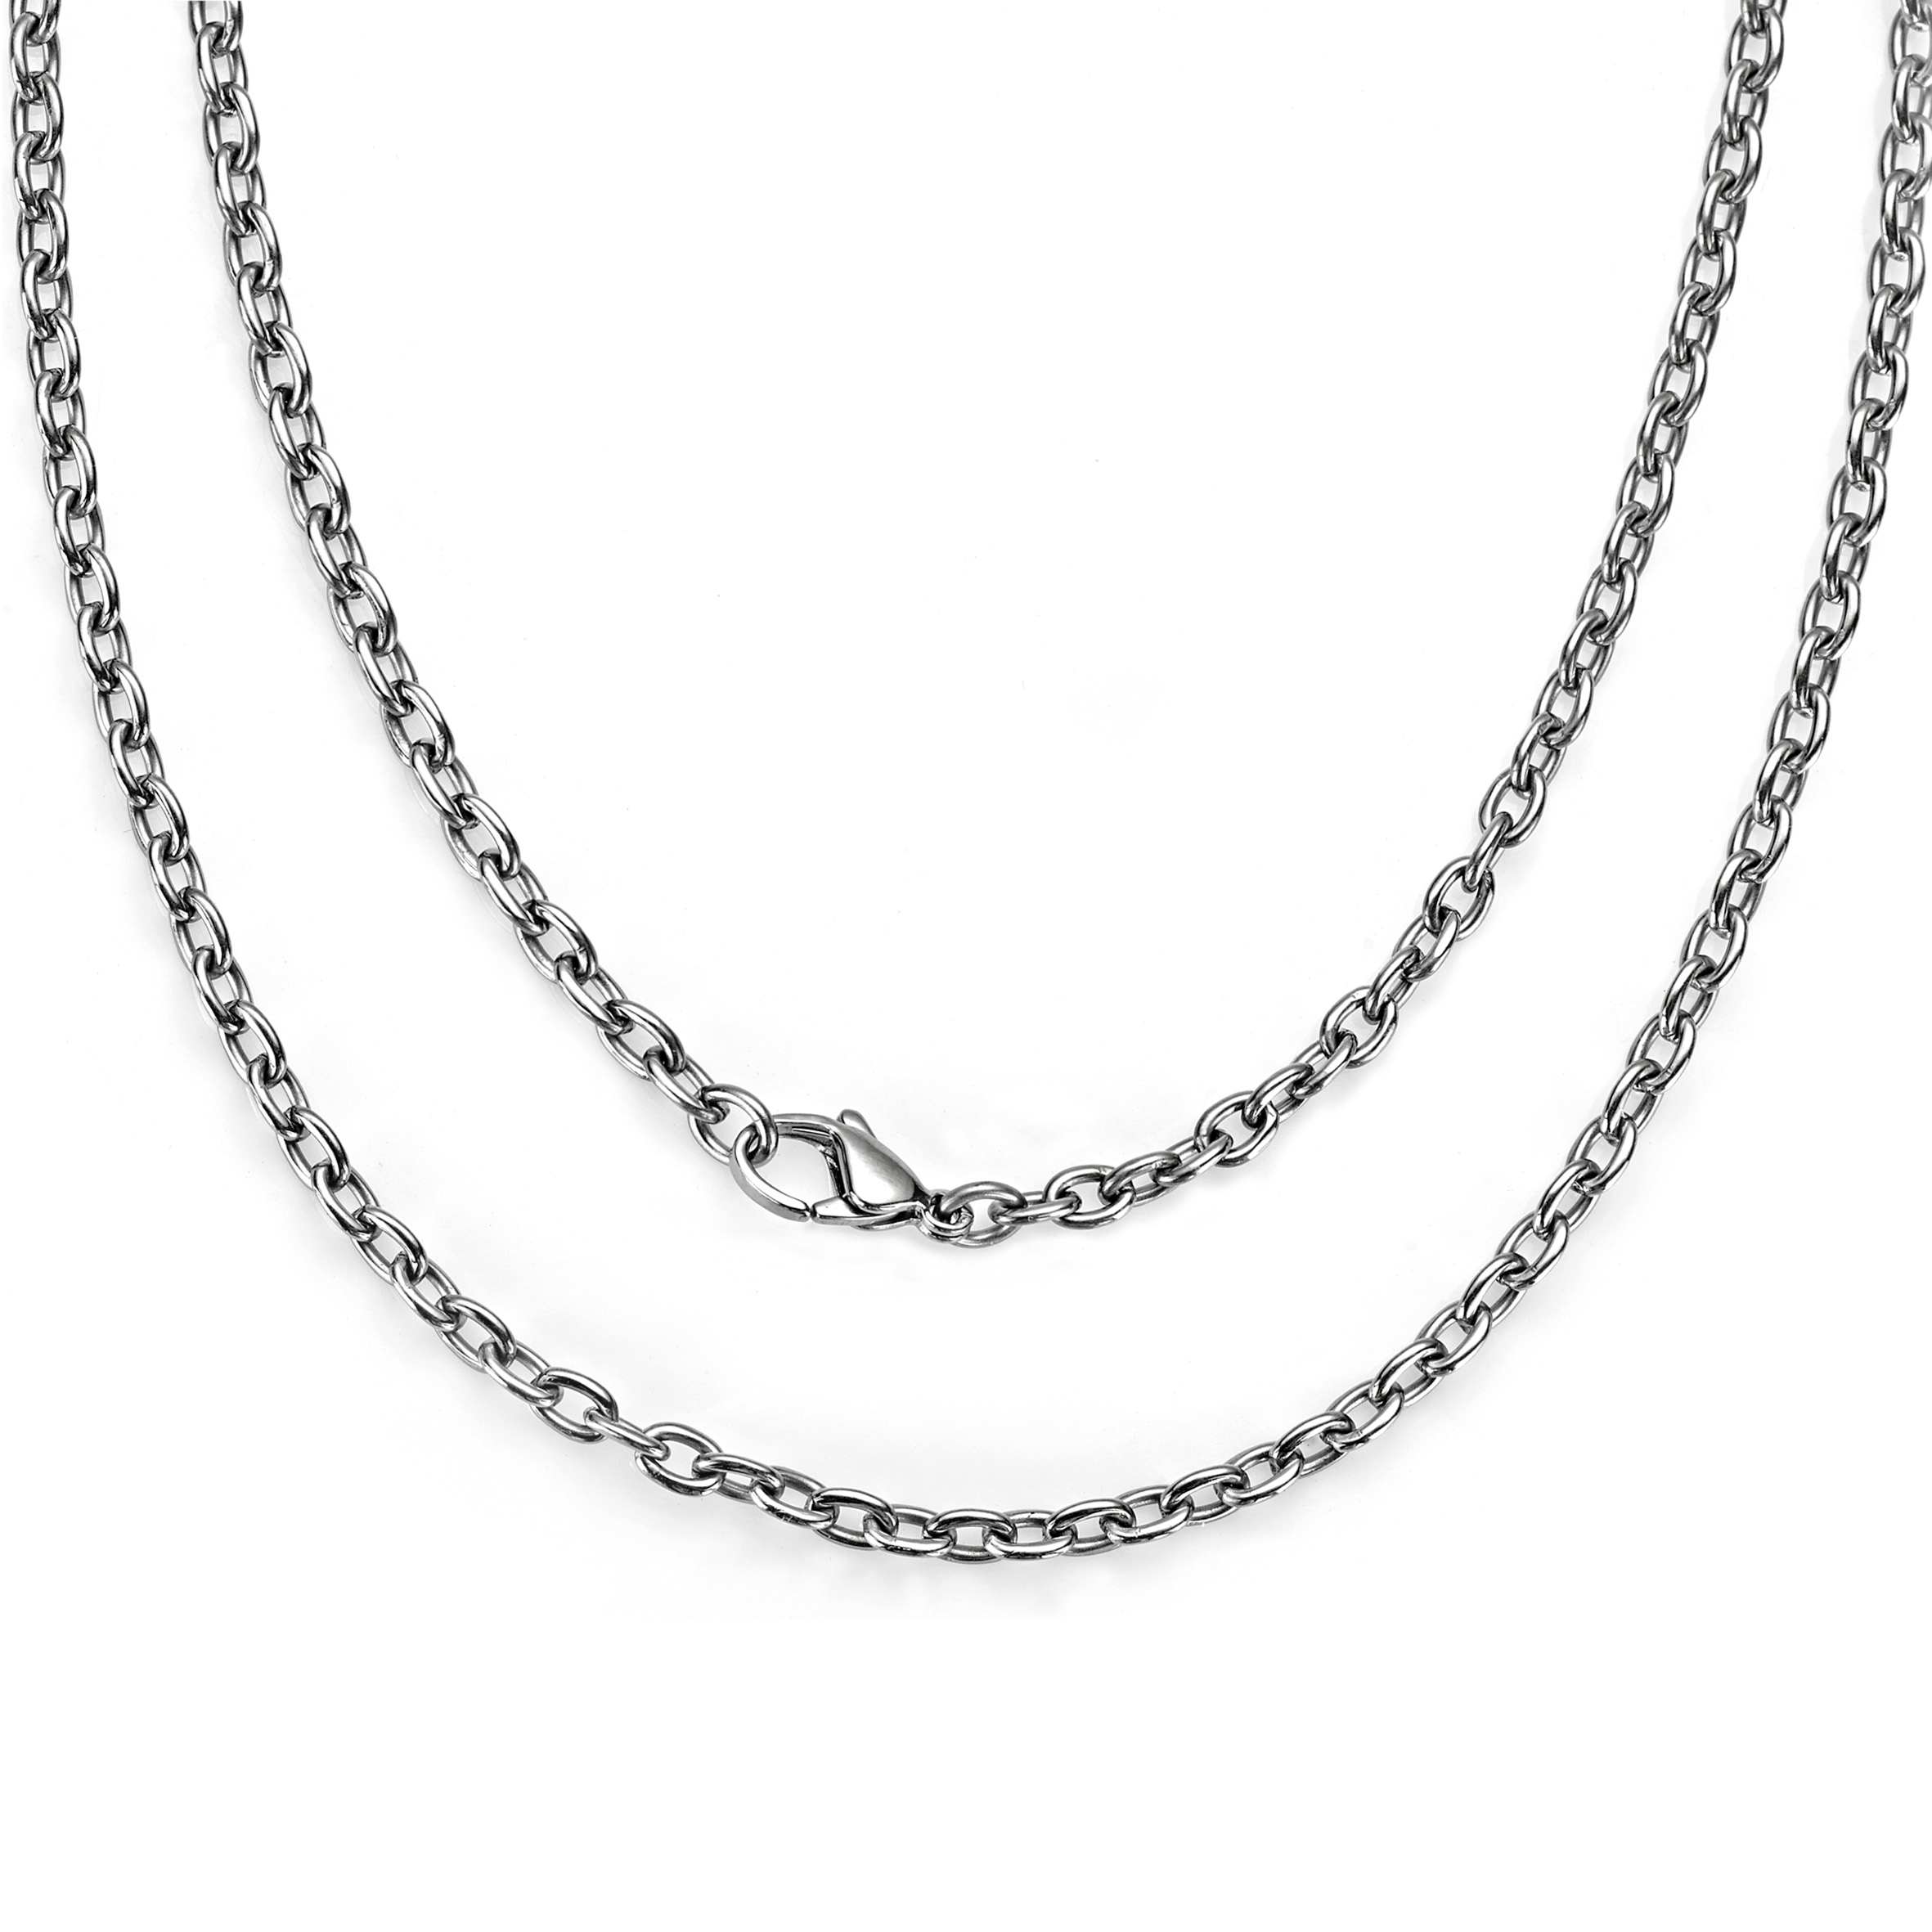 3 Sterling Silver 1mm Cable Chain Large Lobster Clasp Bracelet Safety 2